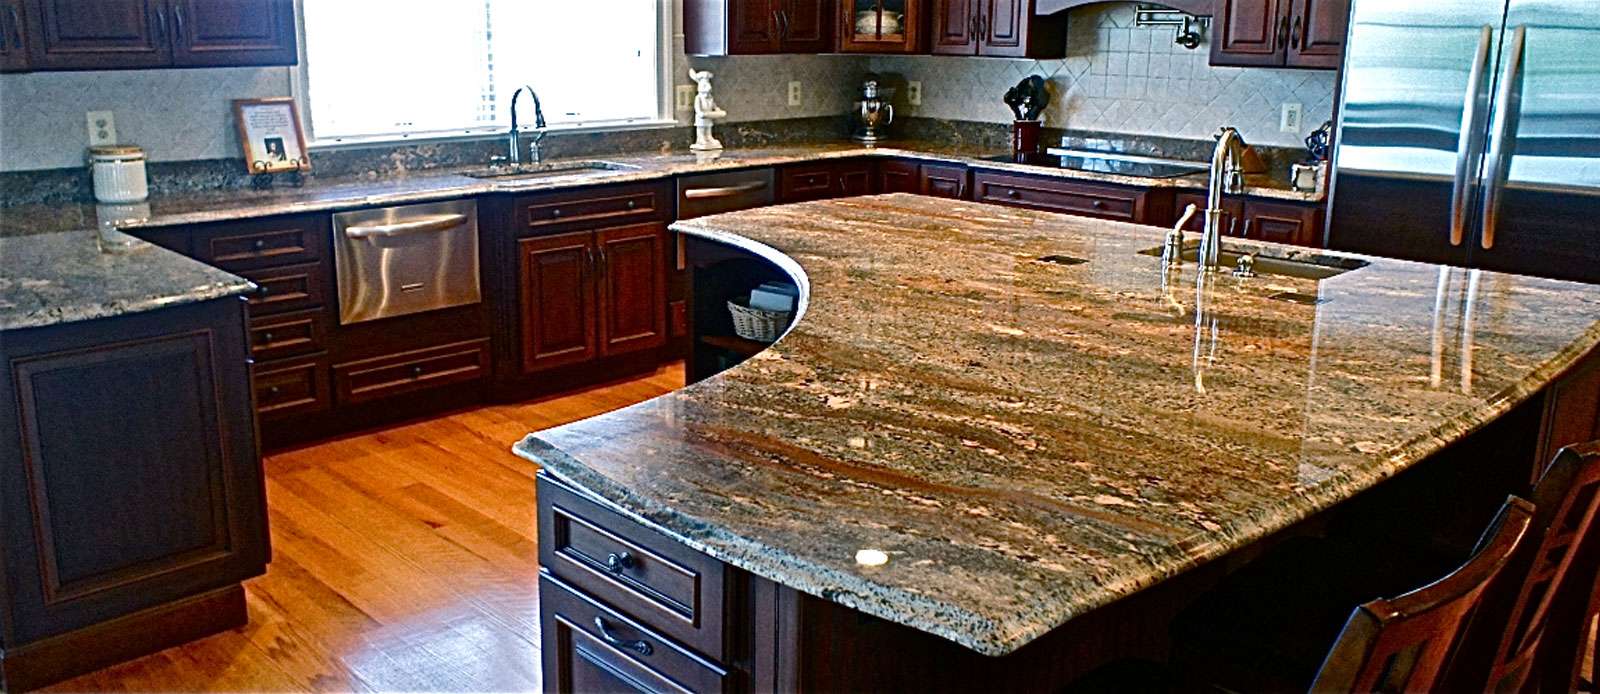 granite counter tops - Granite Counter